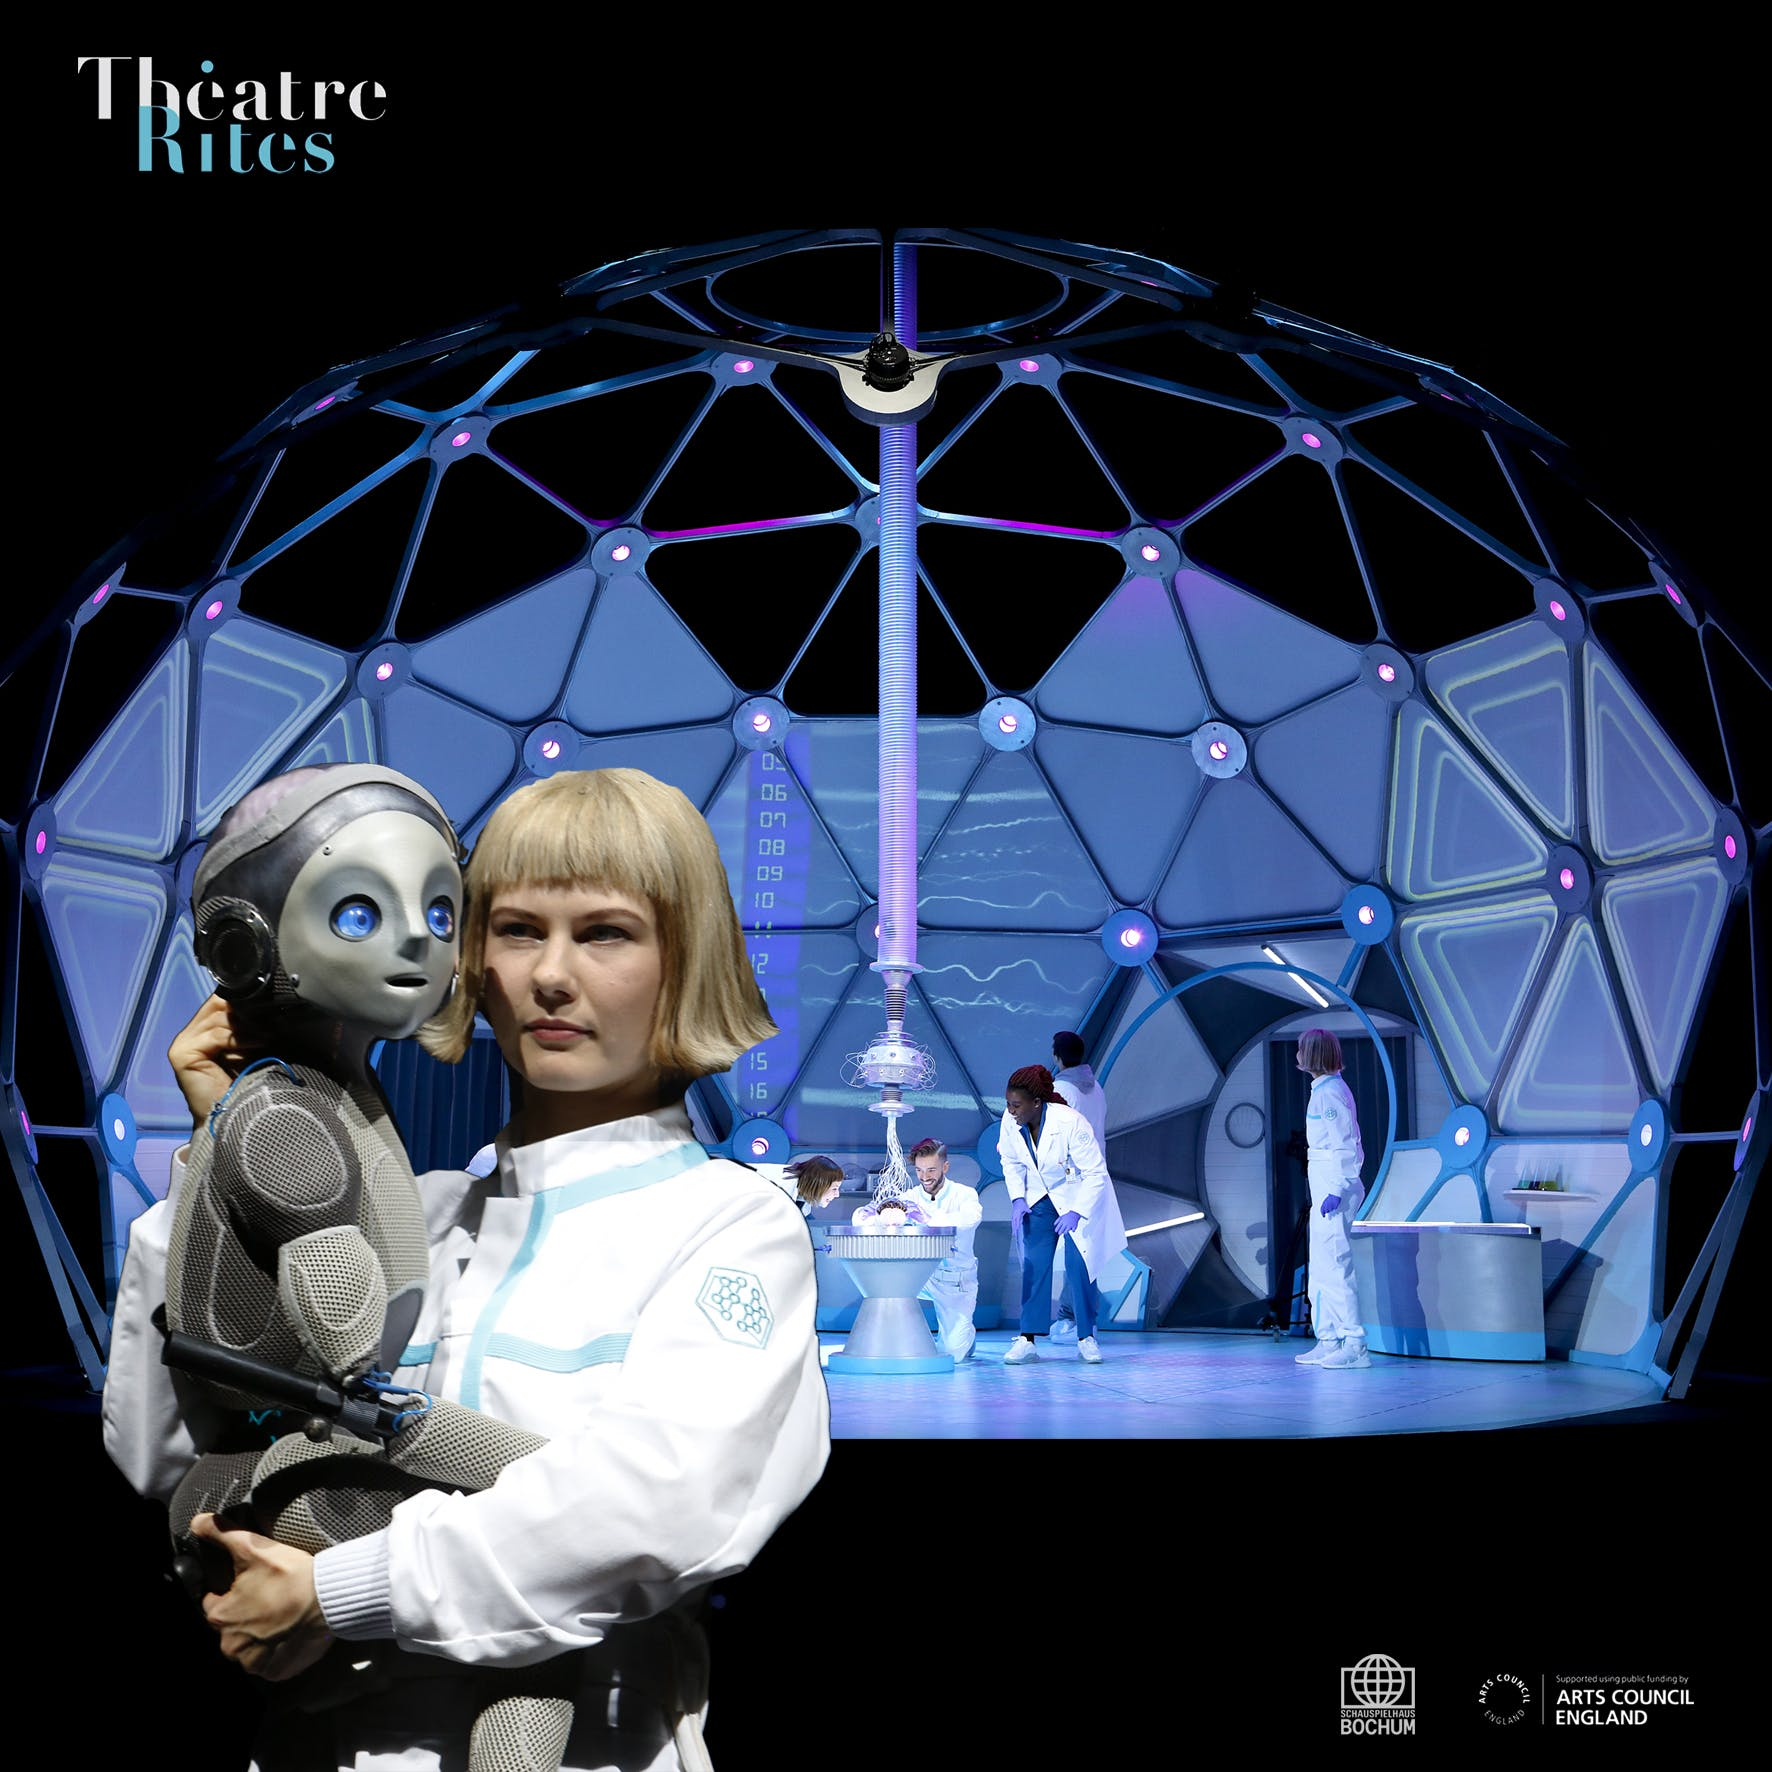 Women in lab coat holding Robot Boy, a grey humanoid puppet with blue eyes.